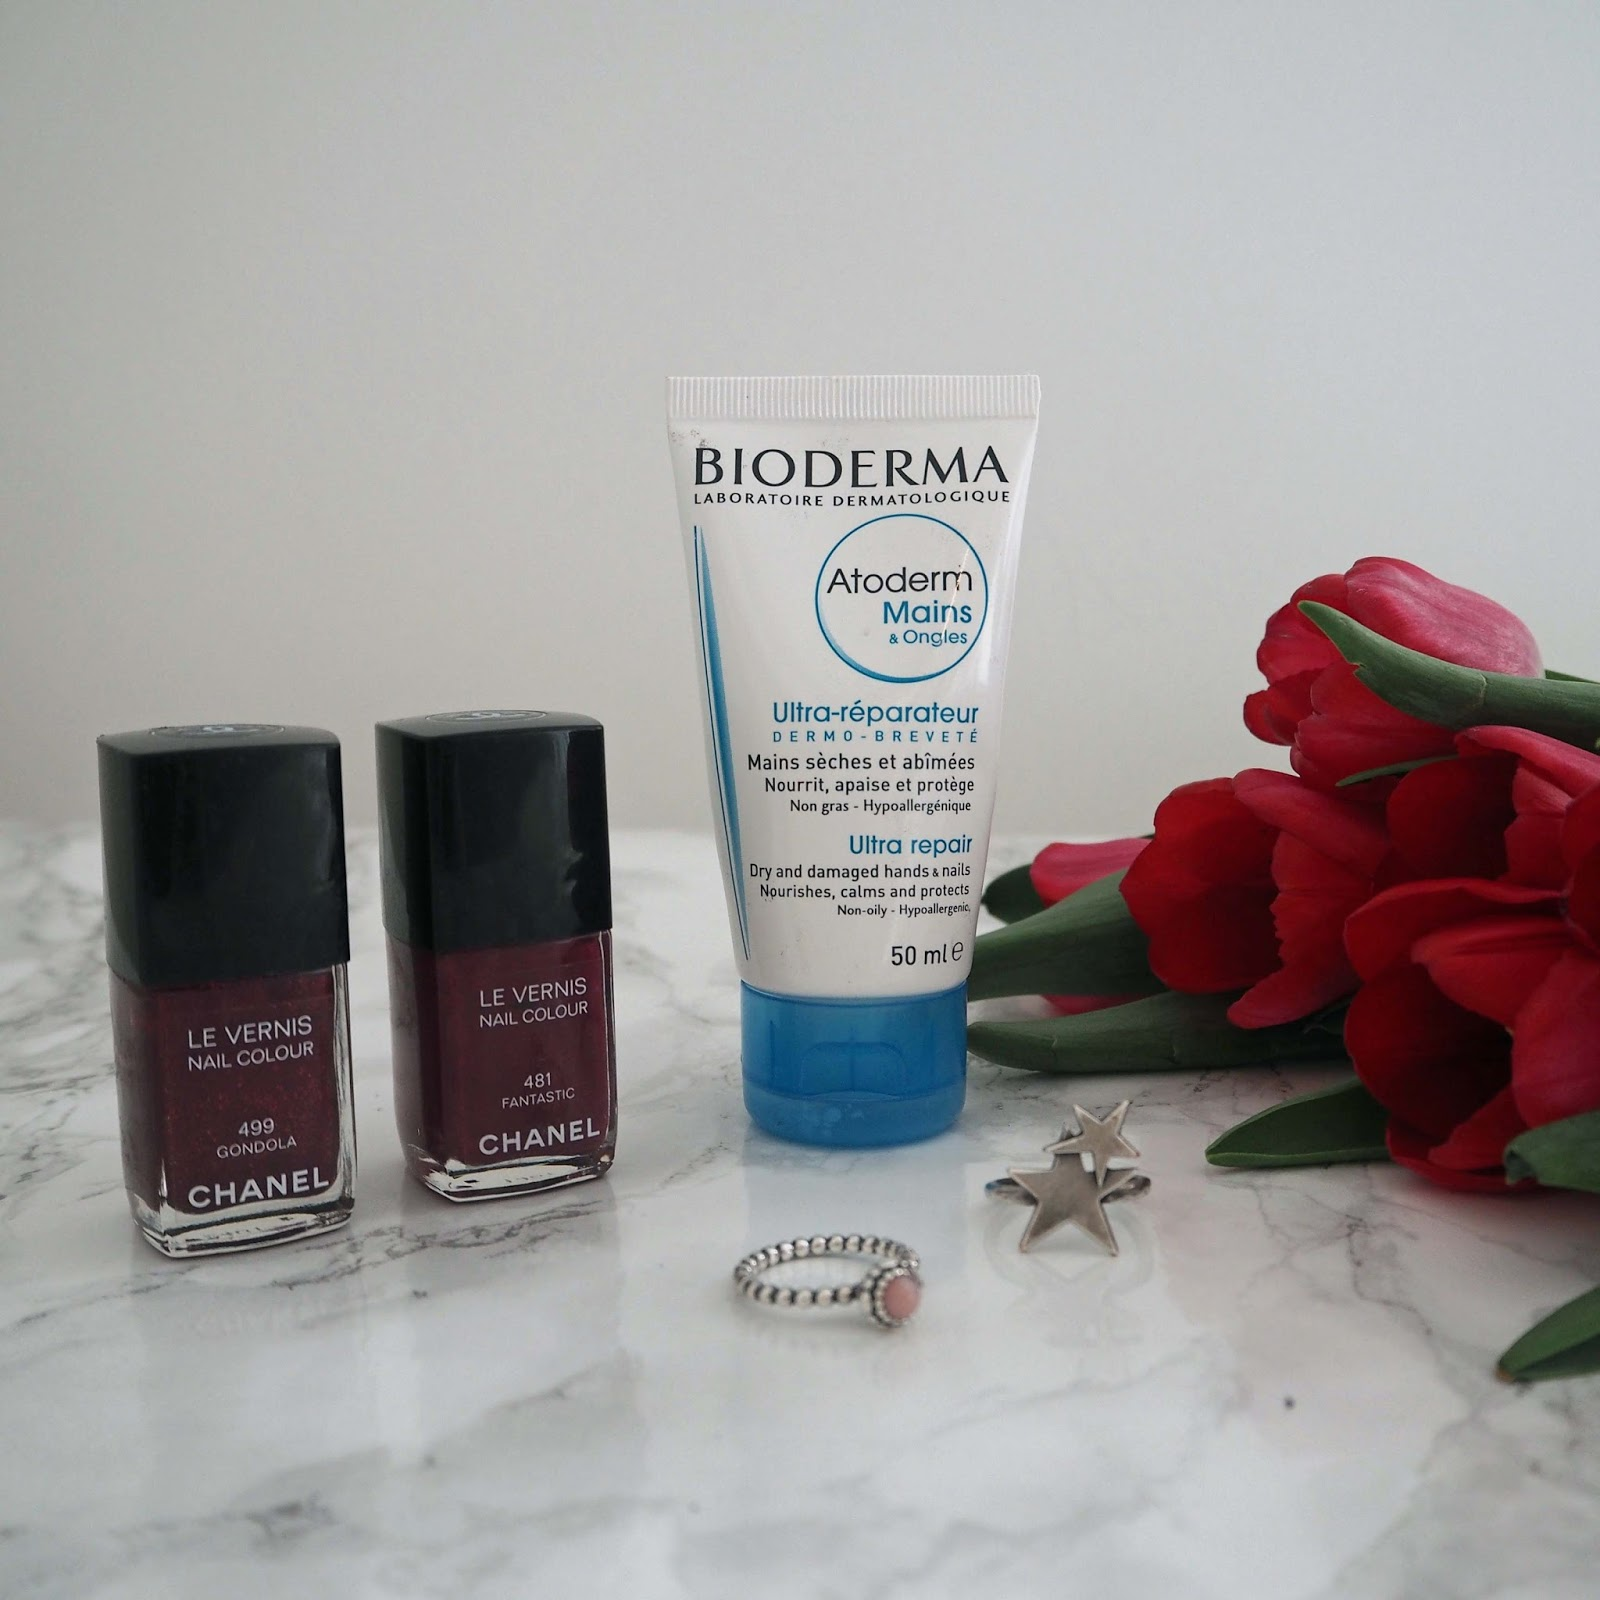 Bioderma hand cream review, over 40 blog